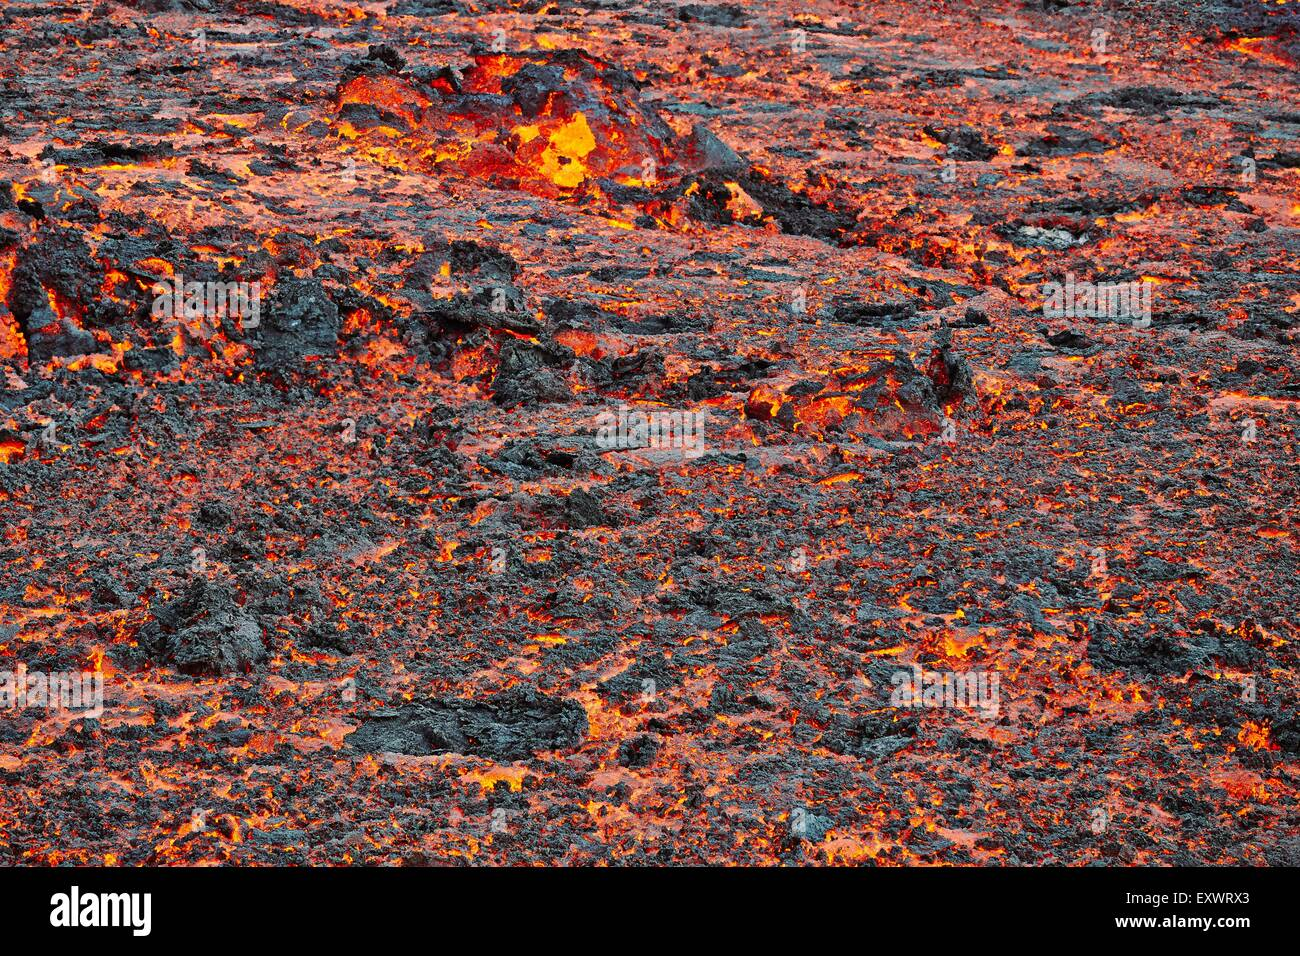 Volcano Bardarbunga, glowing lava at lava field Holuhraun at Sept 2nd 2014, Iceland - Stock Image